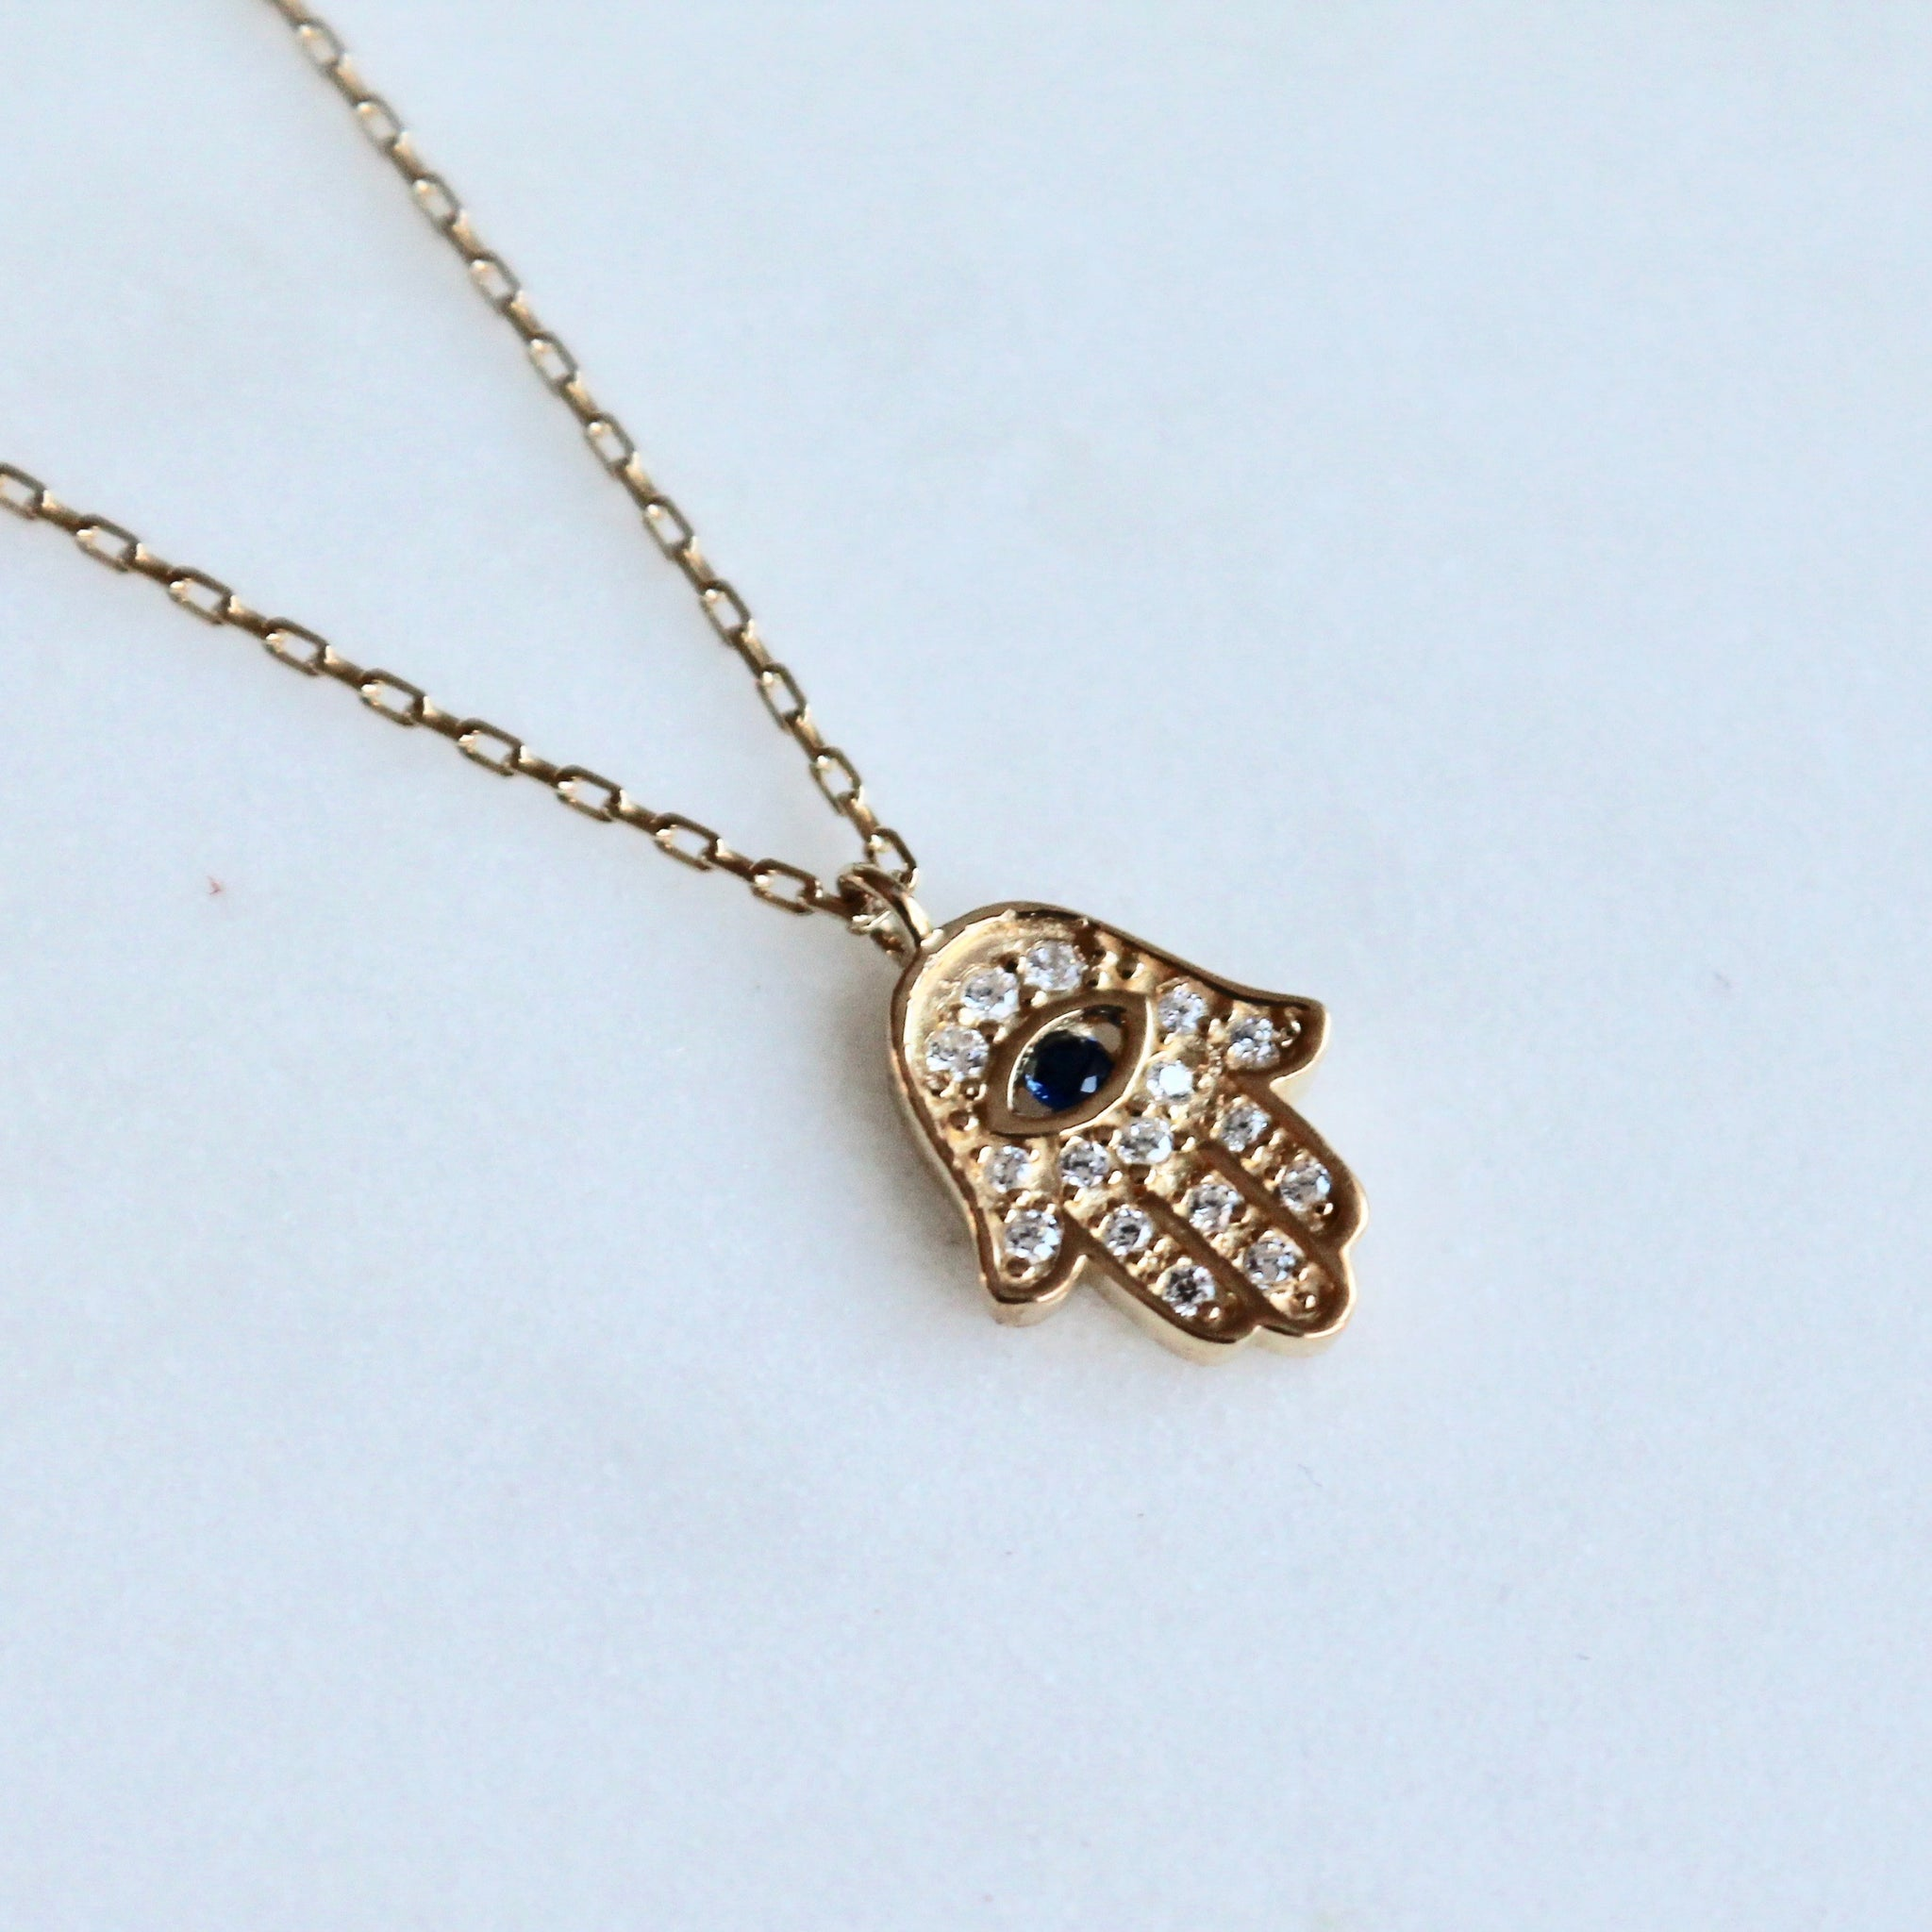 Hamsa sterling necklace - Lily Lough Jewelry